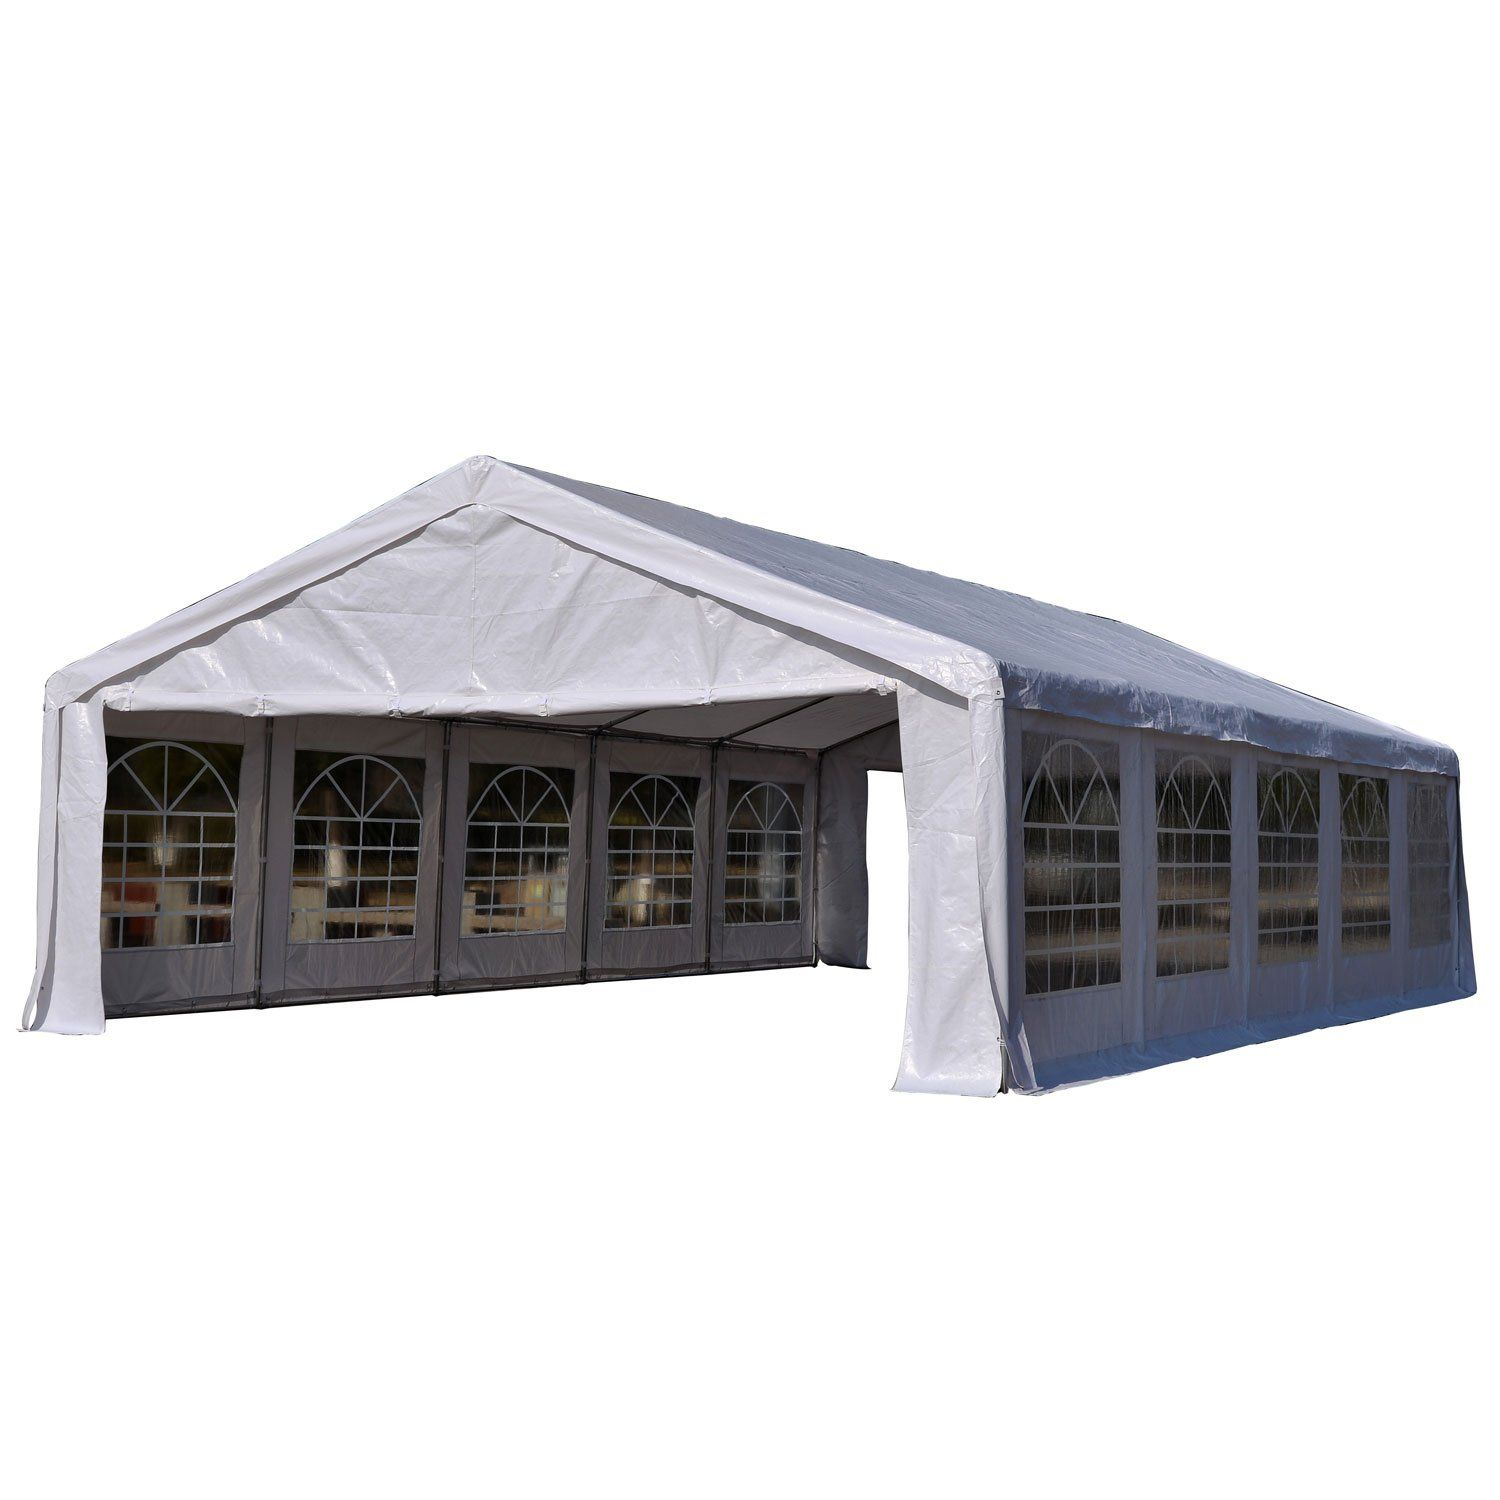 Outsunny 33' x 20' Heavy Duty Outdoor Party